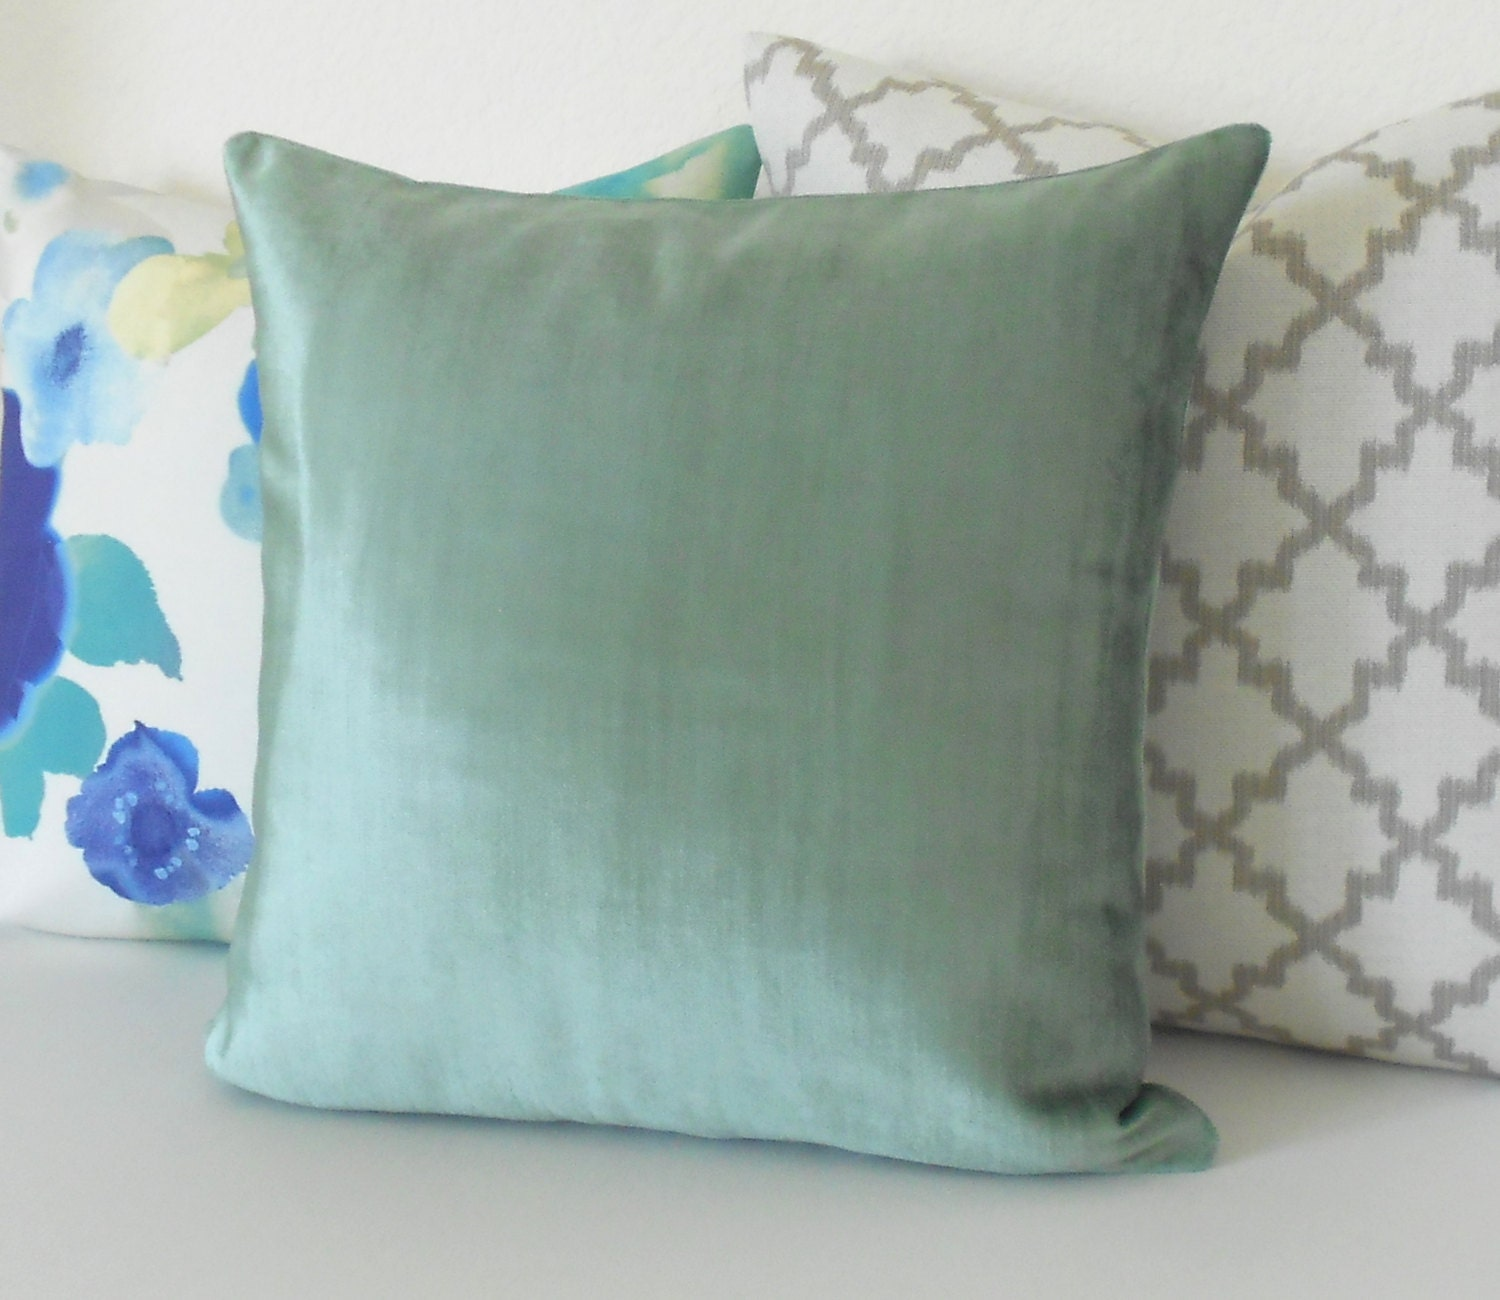 Decorative Pillows With Teal : Teal velvet decorative pillow cover accent pillow solid blue